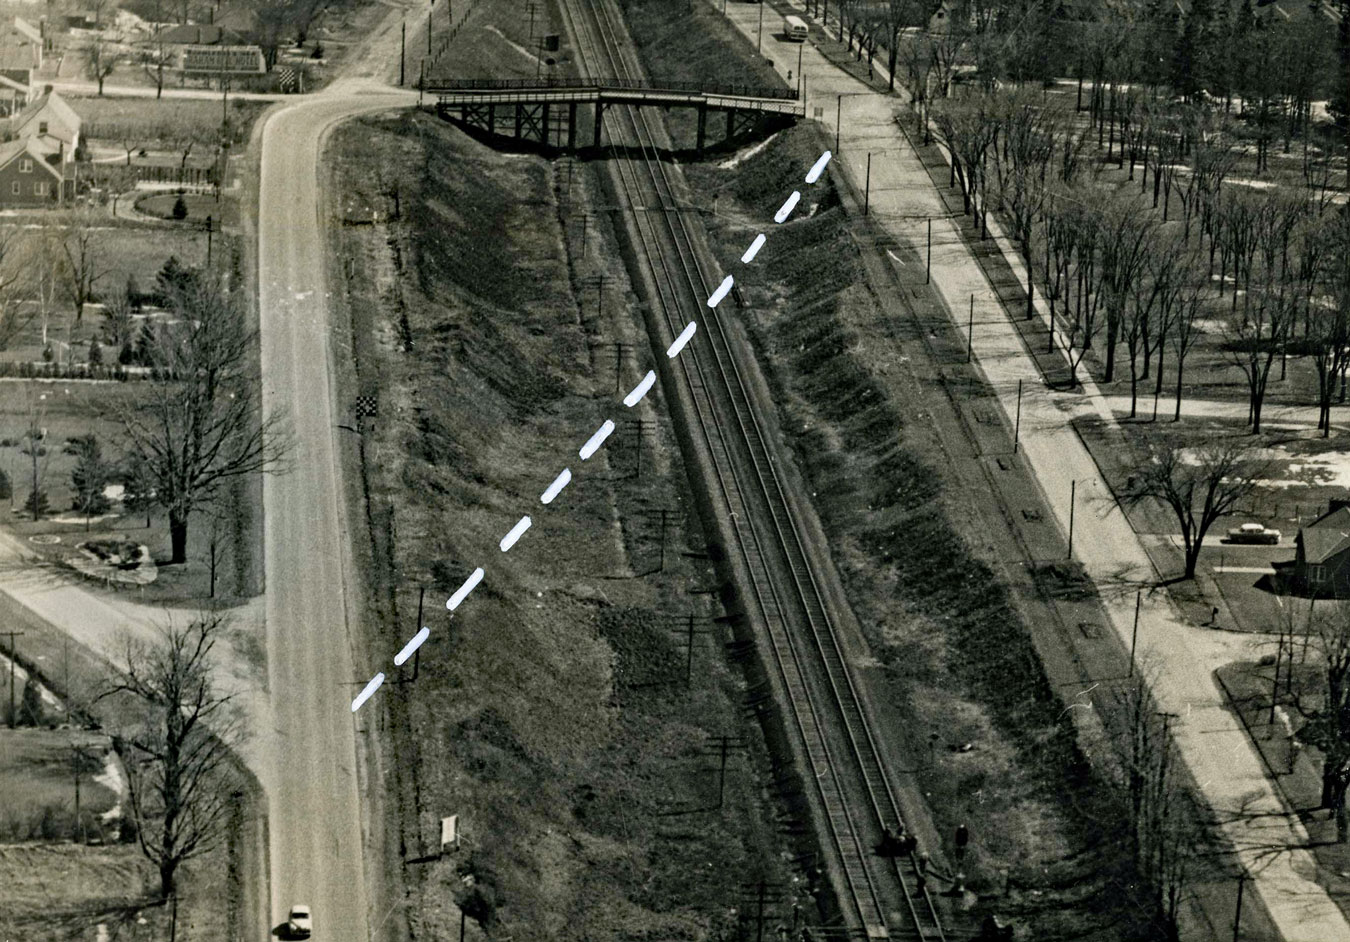 Ava Road Bridge.  Image courtesy of the Brant Historical Society   The dashed line identifies the proposed route of the new bridge to cross the Canadian National Railway's mainline tracks connecting Brant Ave with Paris Road. The new bridge opened in 1959.